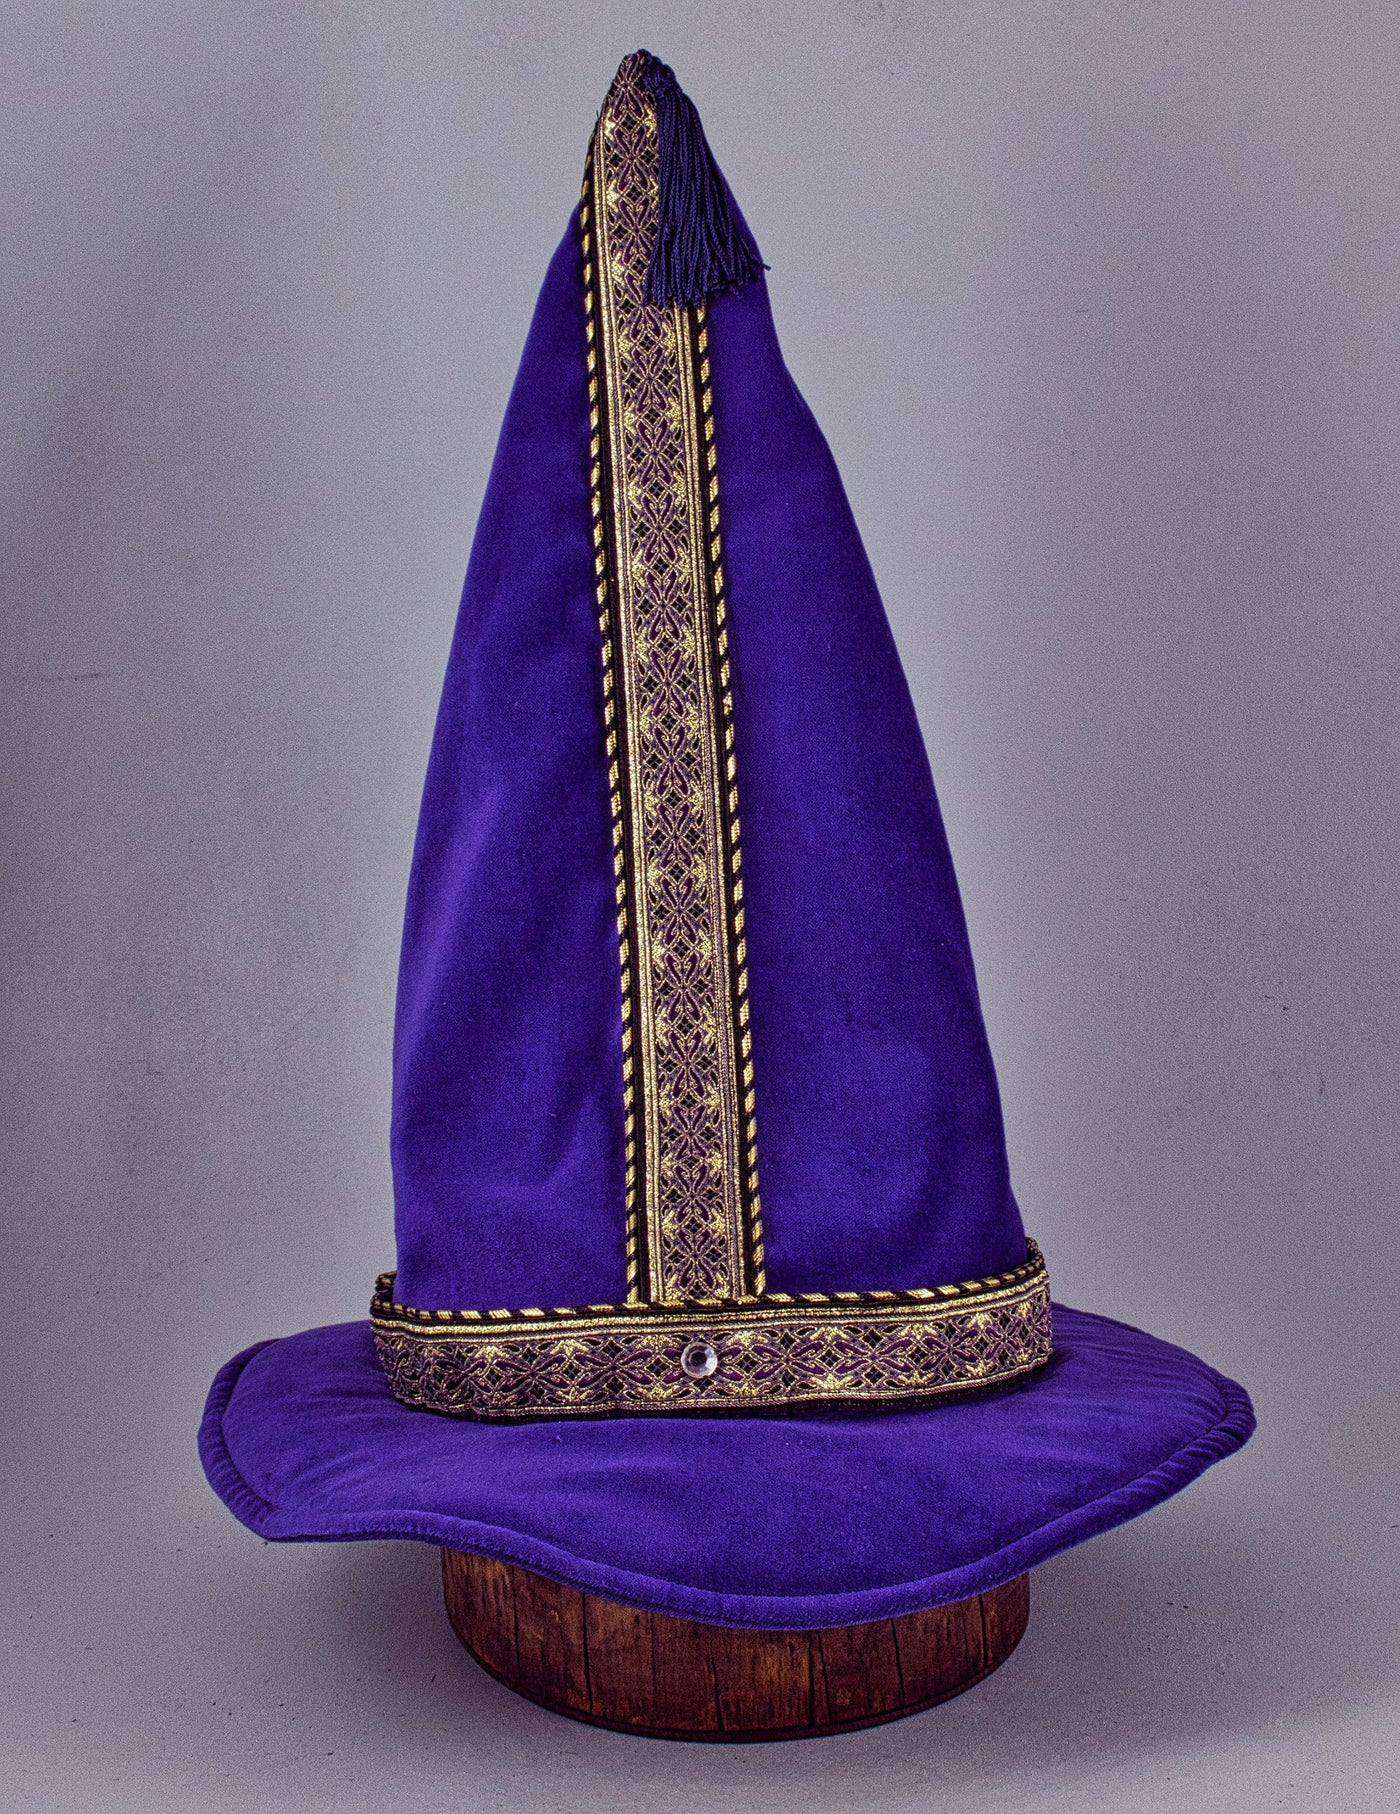 Cotton Velveteen Wizard Hat - Purple / Purple Gold - Tall Toad